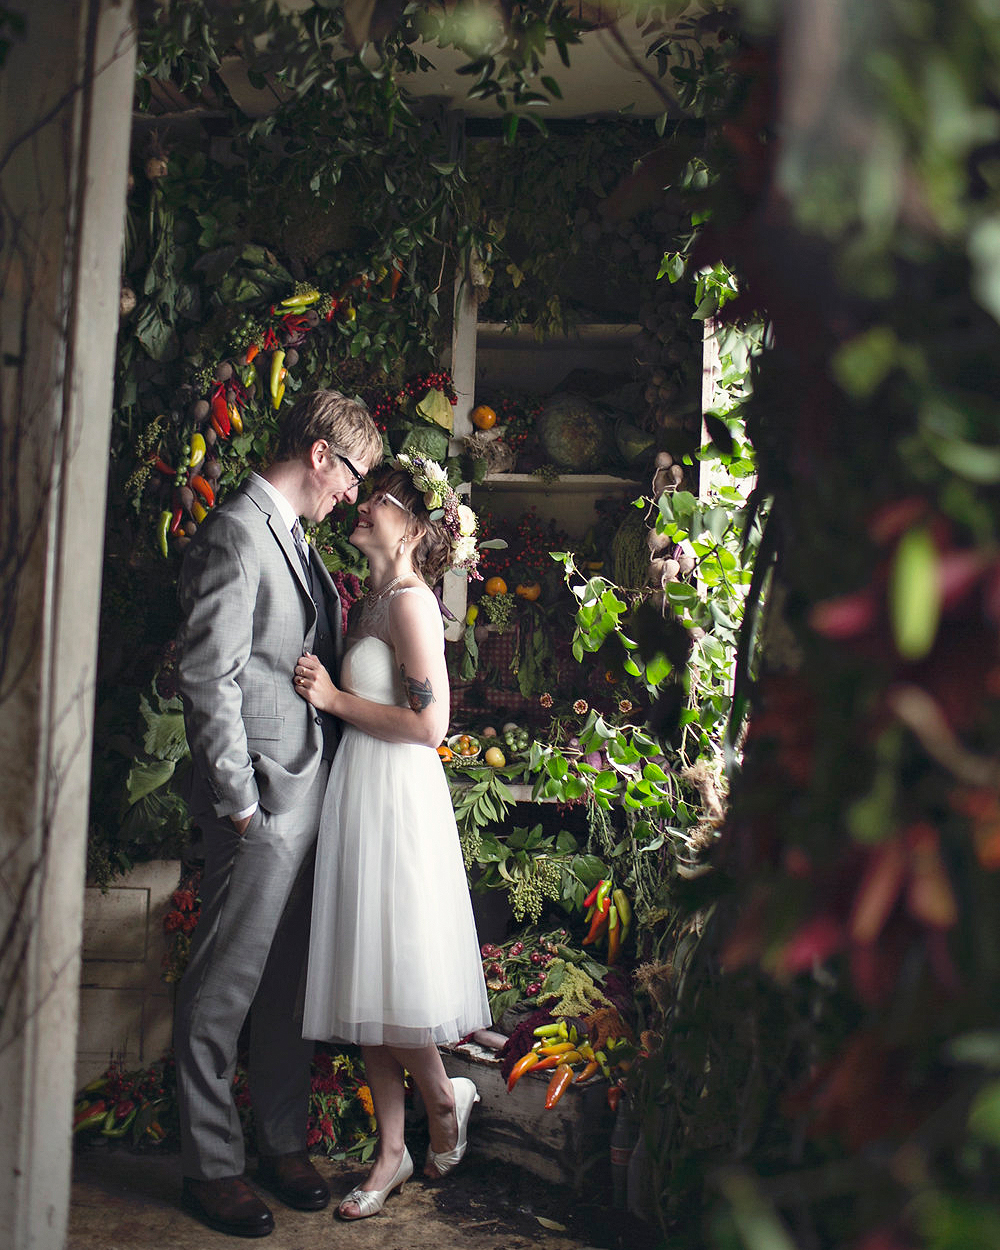 kristen-steve-flowerhouse-wedding-couple-6155-s113059-0616.jpg